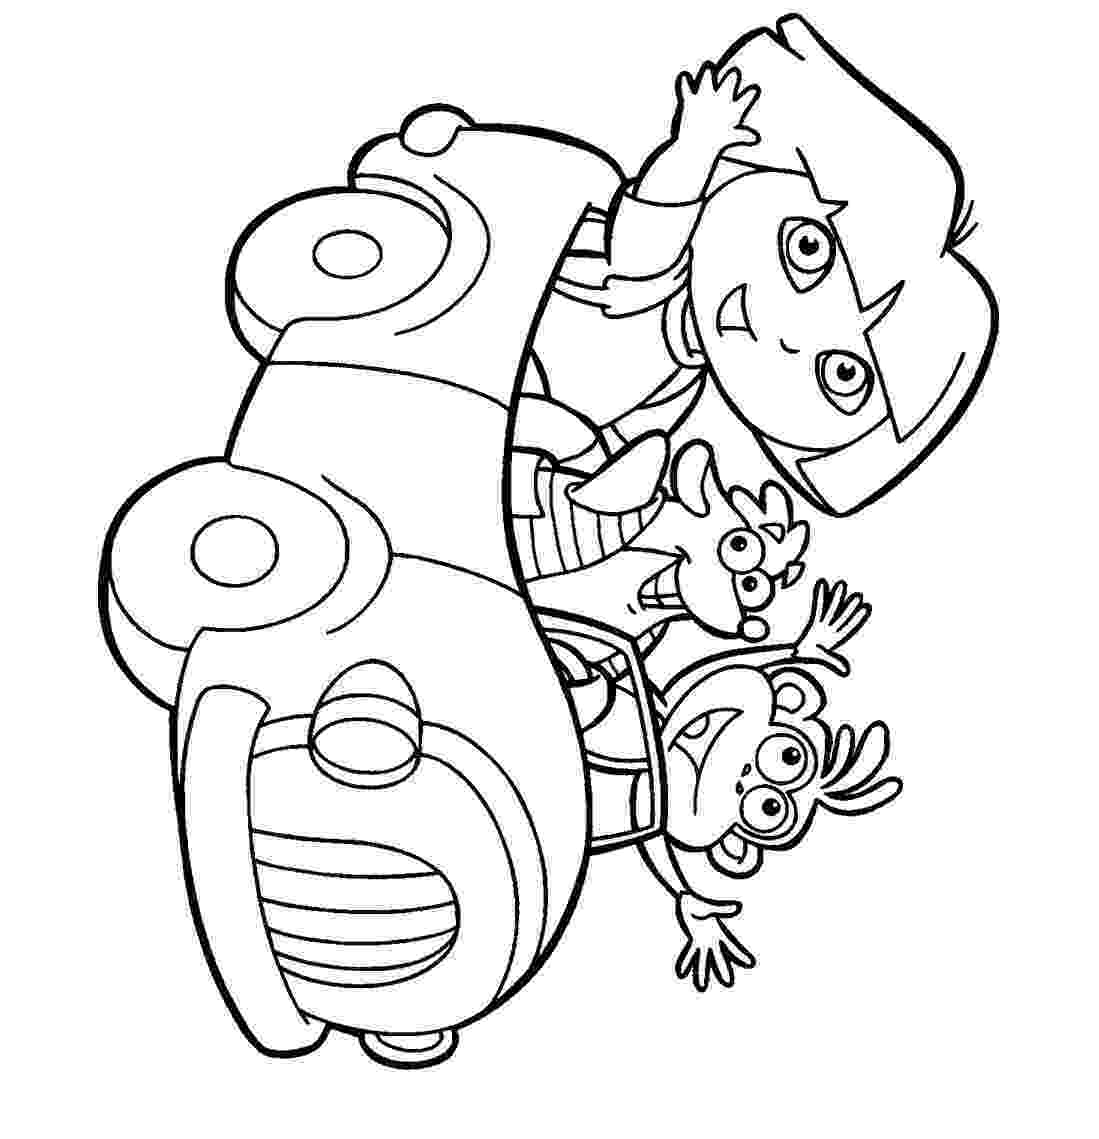 printable coloring dora free printable dora coloring pages for kids cool2bkids coloring printable dora